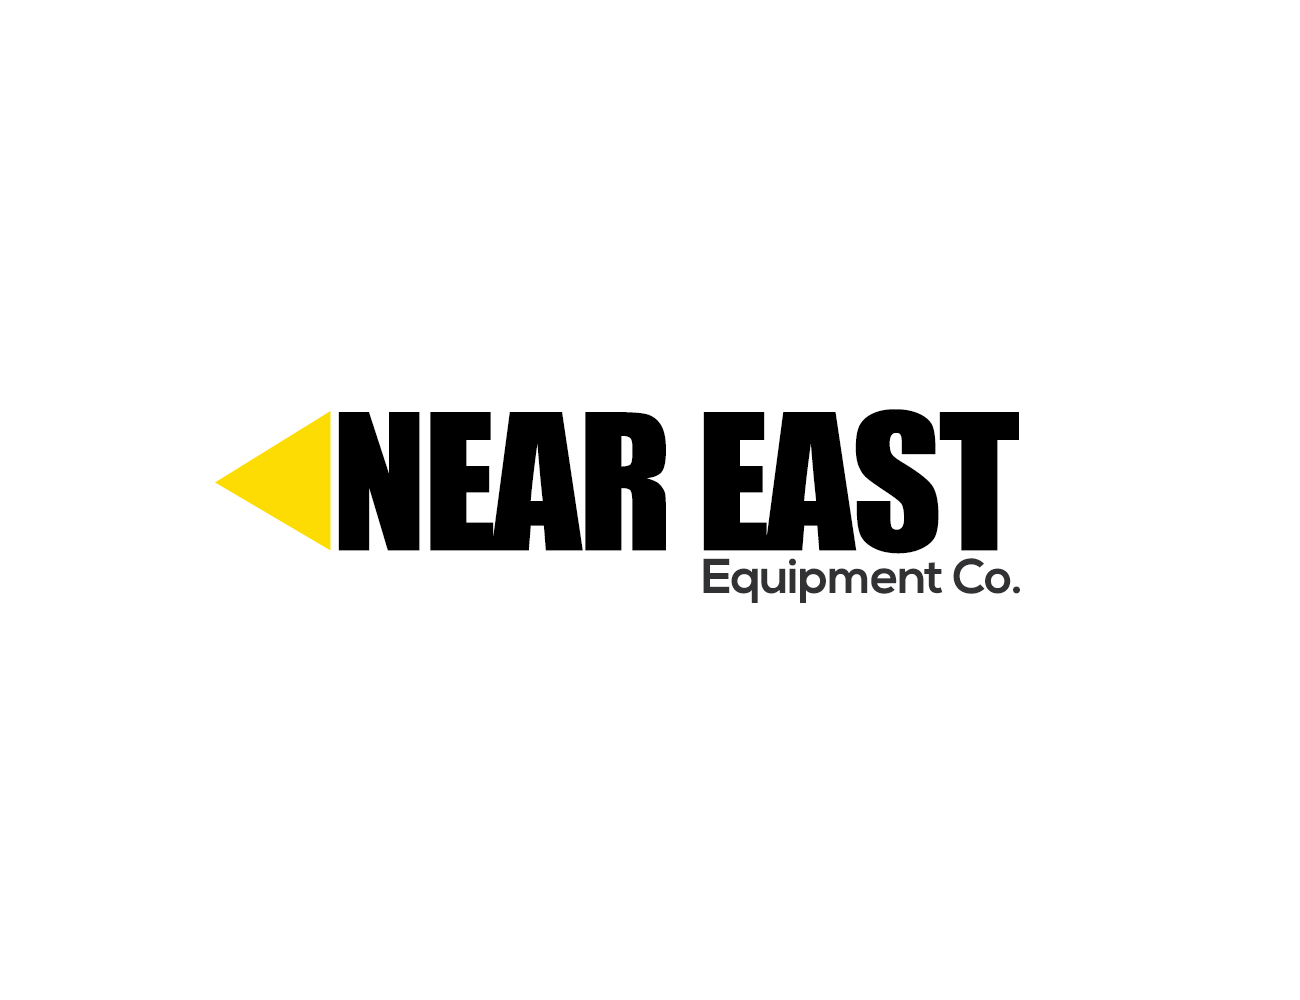 Logo Design by fireacefist - Entry No. 35 in the Logo Design Contest Imaginative Logo Design for The Near East Equipment Co..